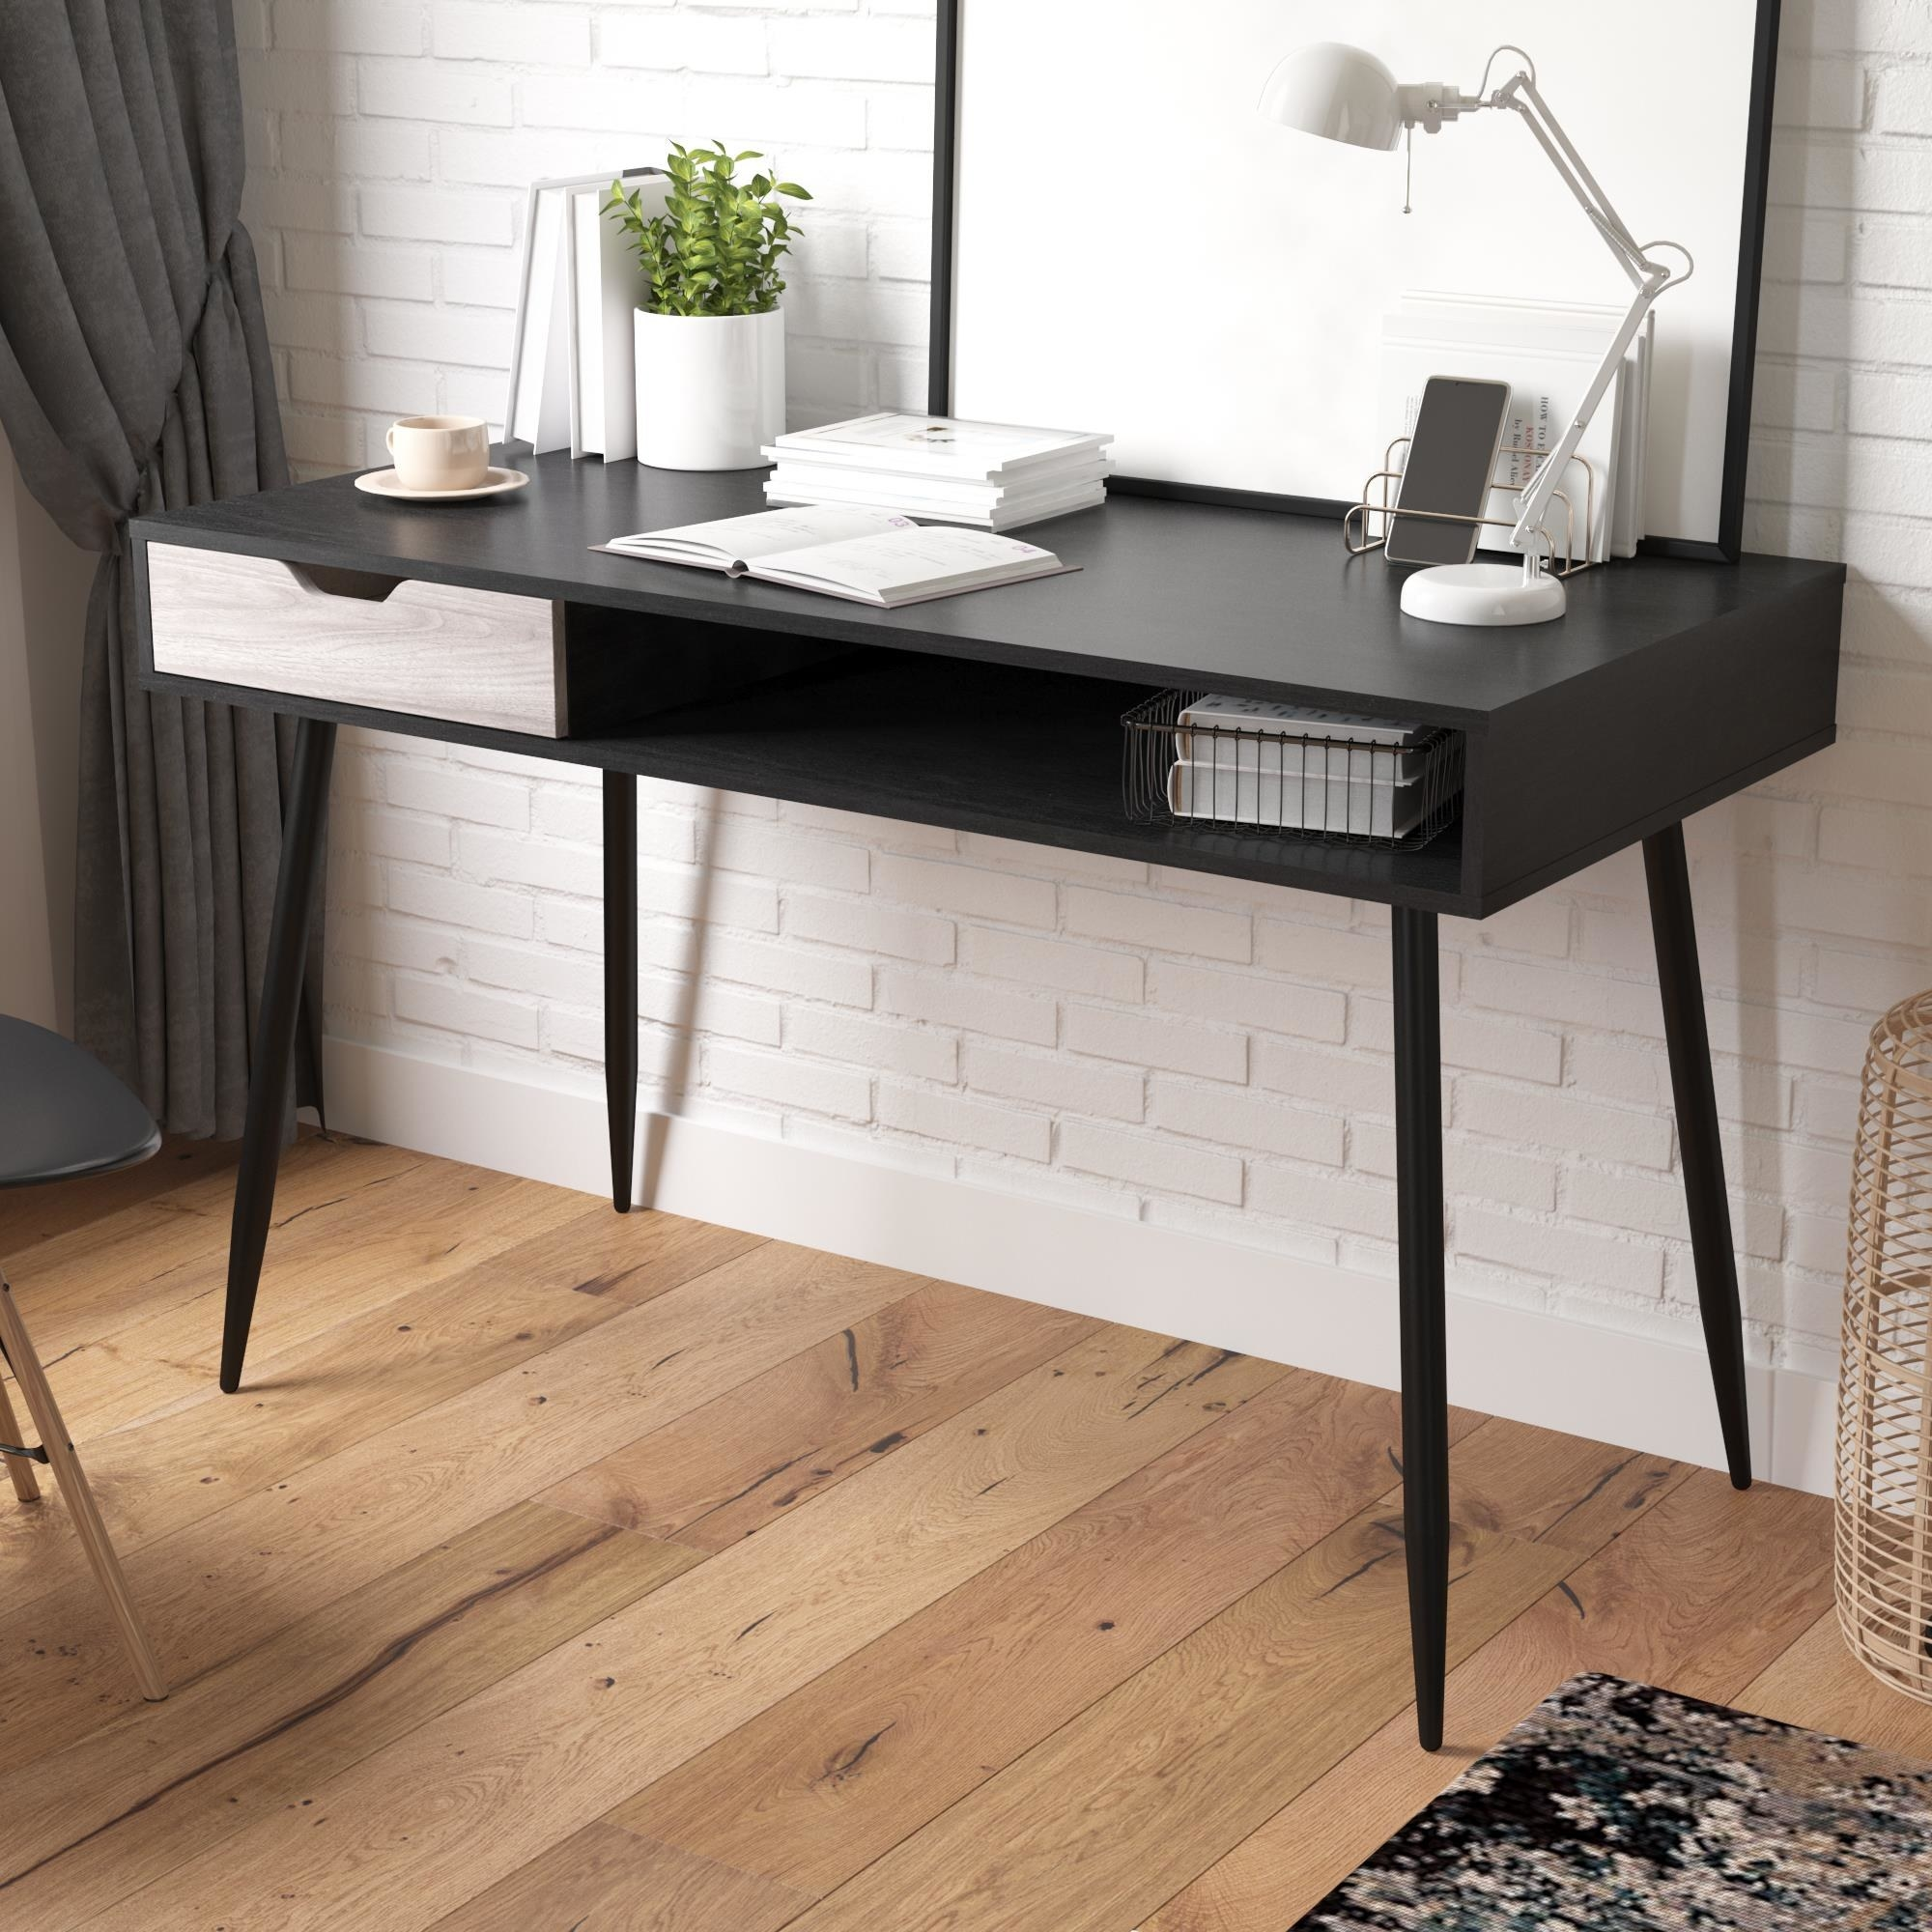 Black, thin writing desk in apartment